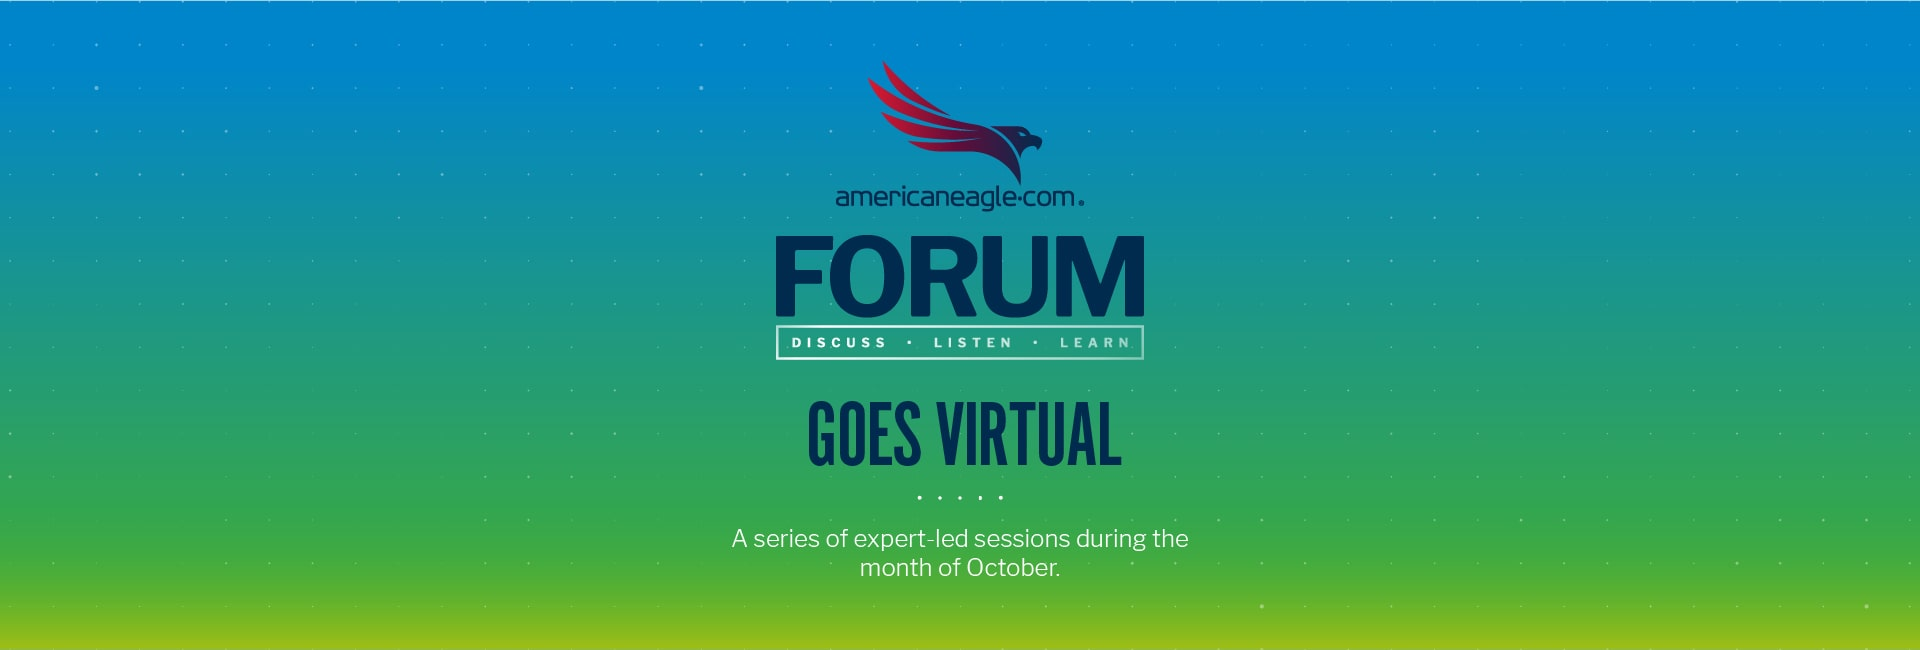 A series of expert-led sessions during the month of October